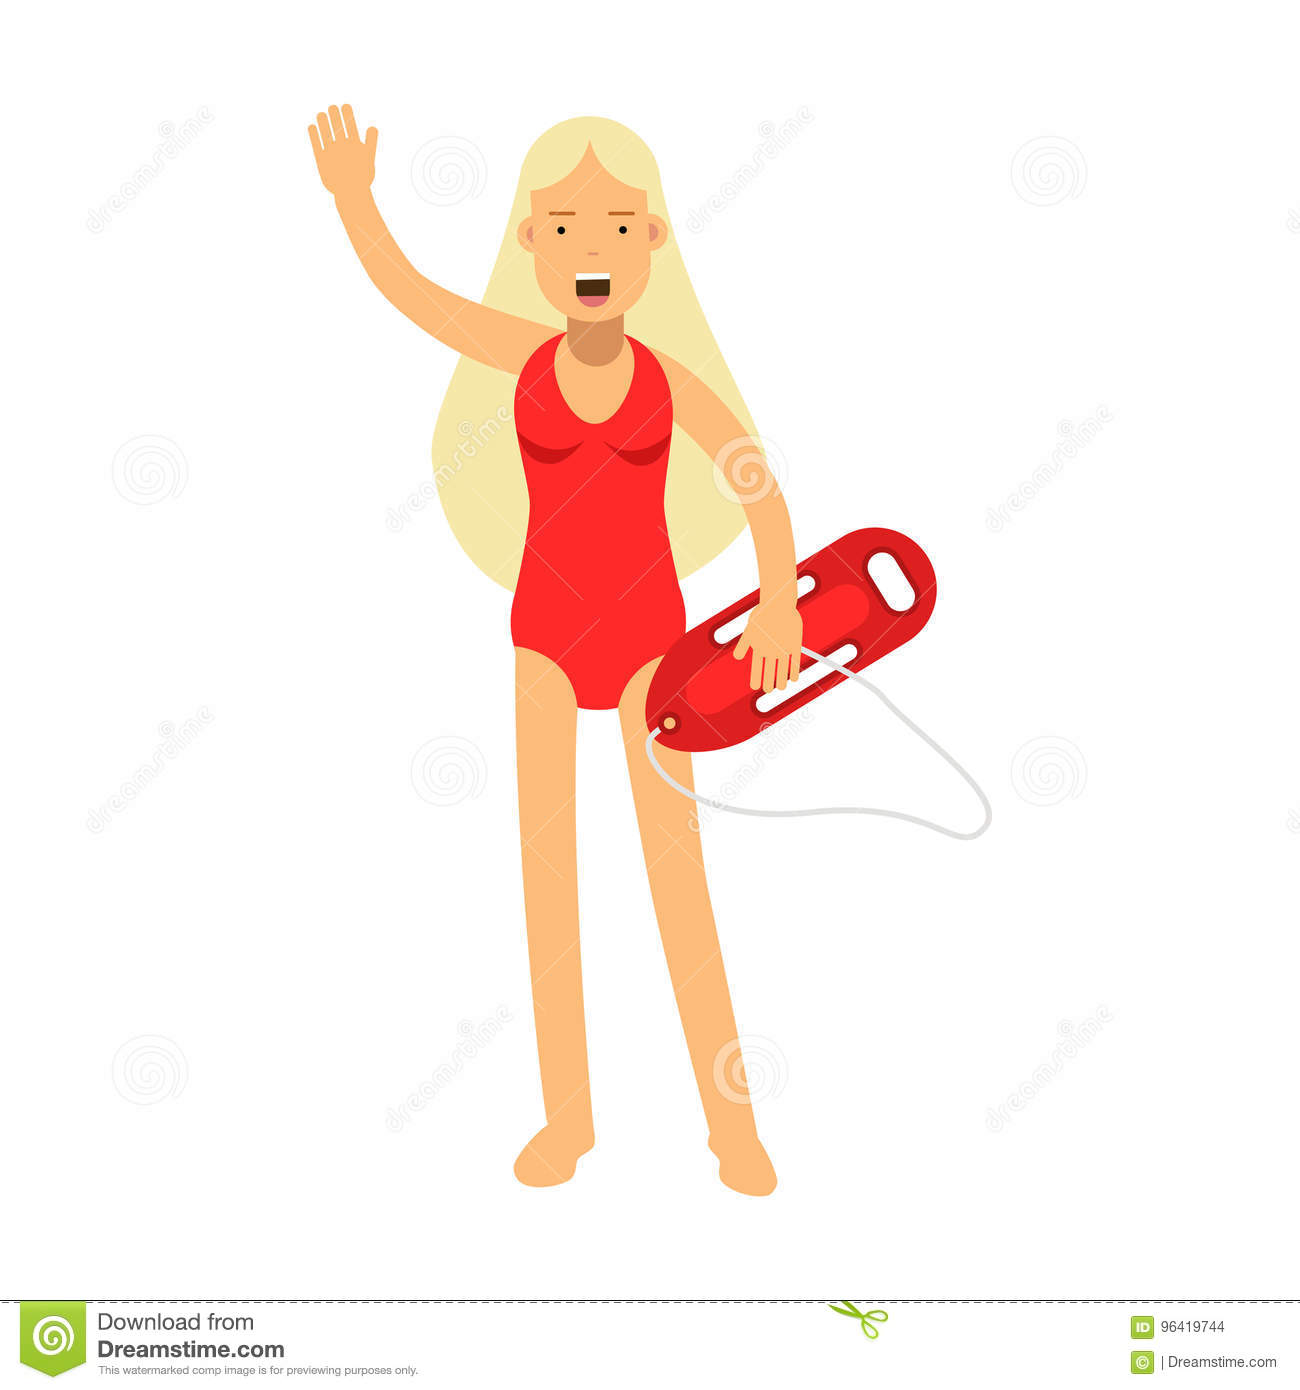 b9298bdb64fb Lifeguard girl character in a red swimsuit with life preserver waving her  hand Illustration